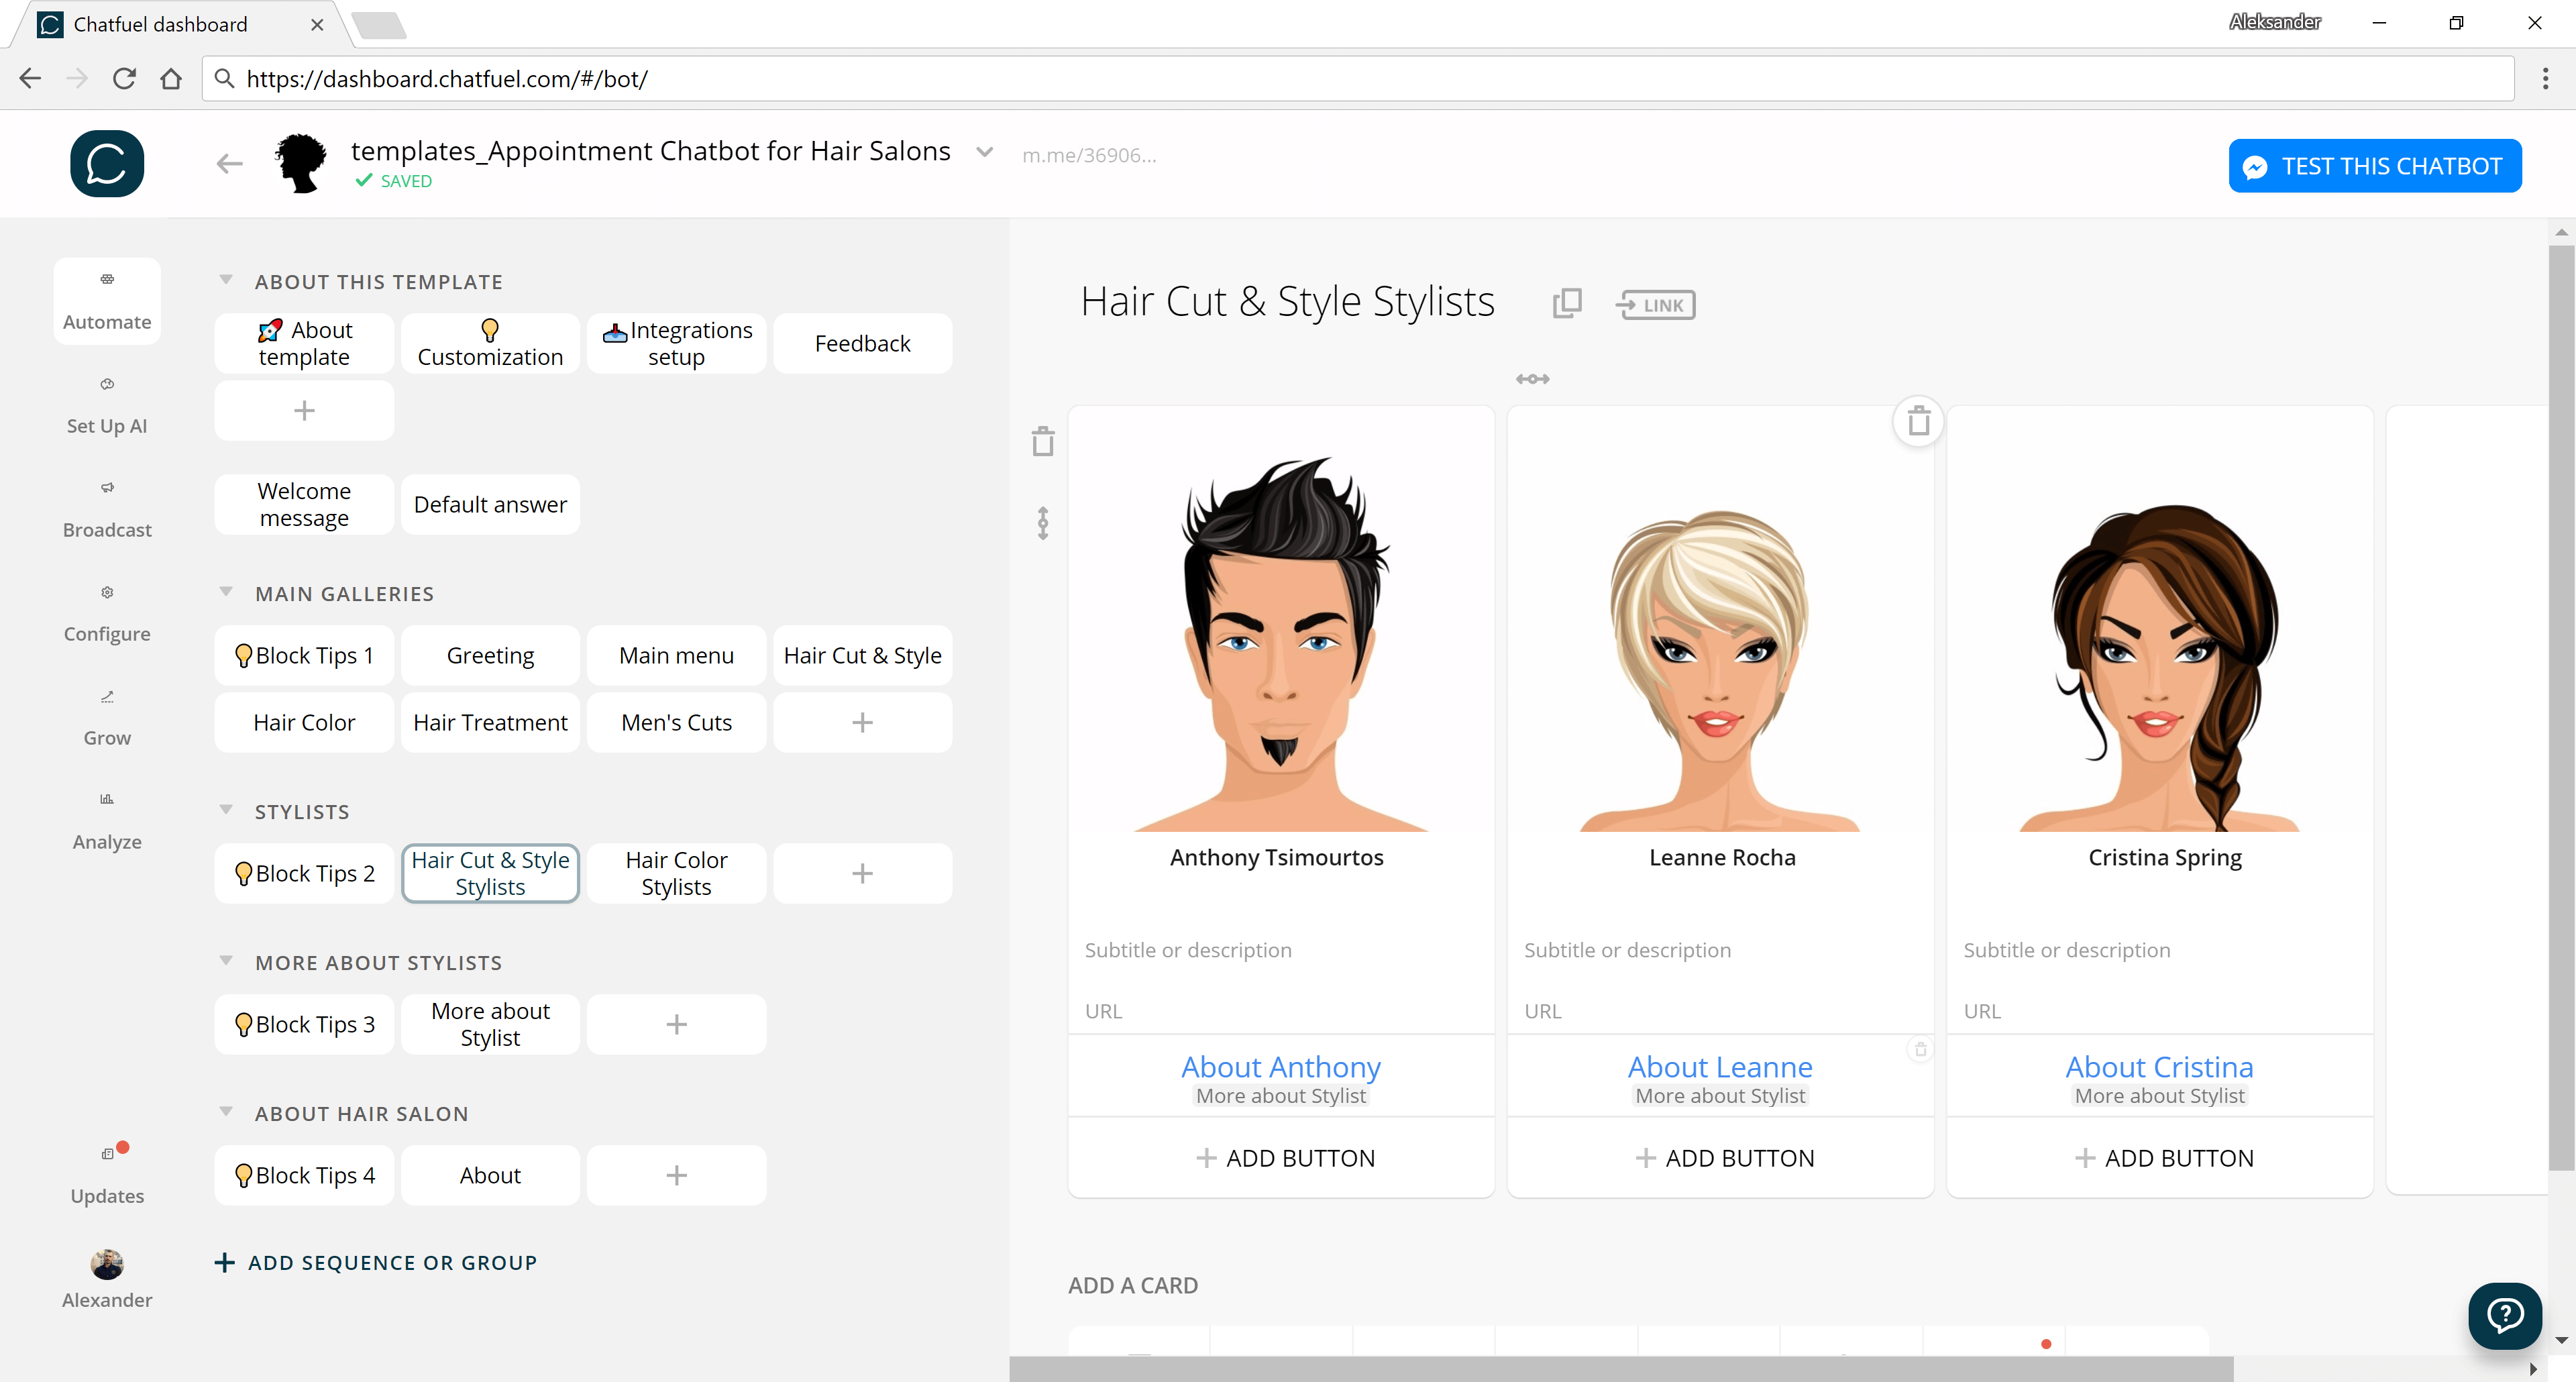 Chatfuel flow editor screenshot for Appointment Chatbot Template for Hair Salons